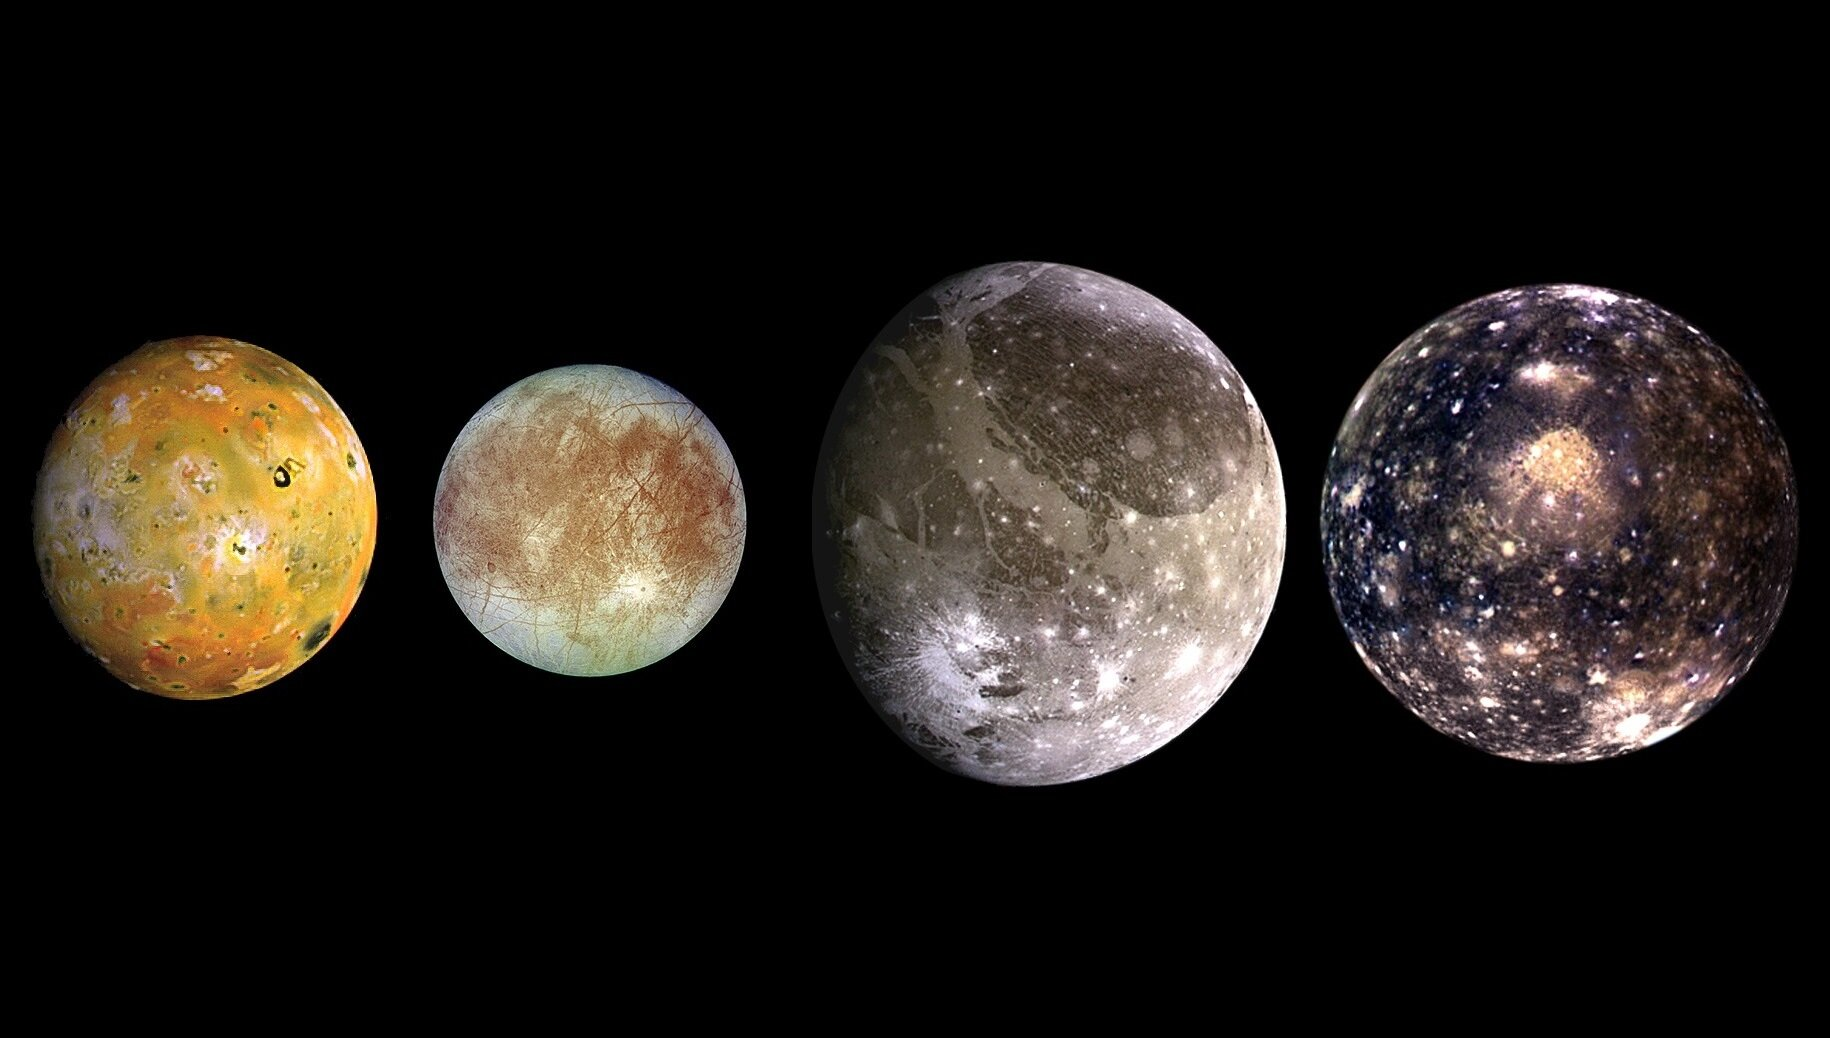 From left to right: Io, Europa, Ganymede and Callisto - Image Credit: NASA/JPL/DLR / Edited for aspect ratio by Universal-Sci